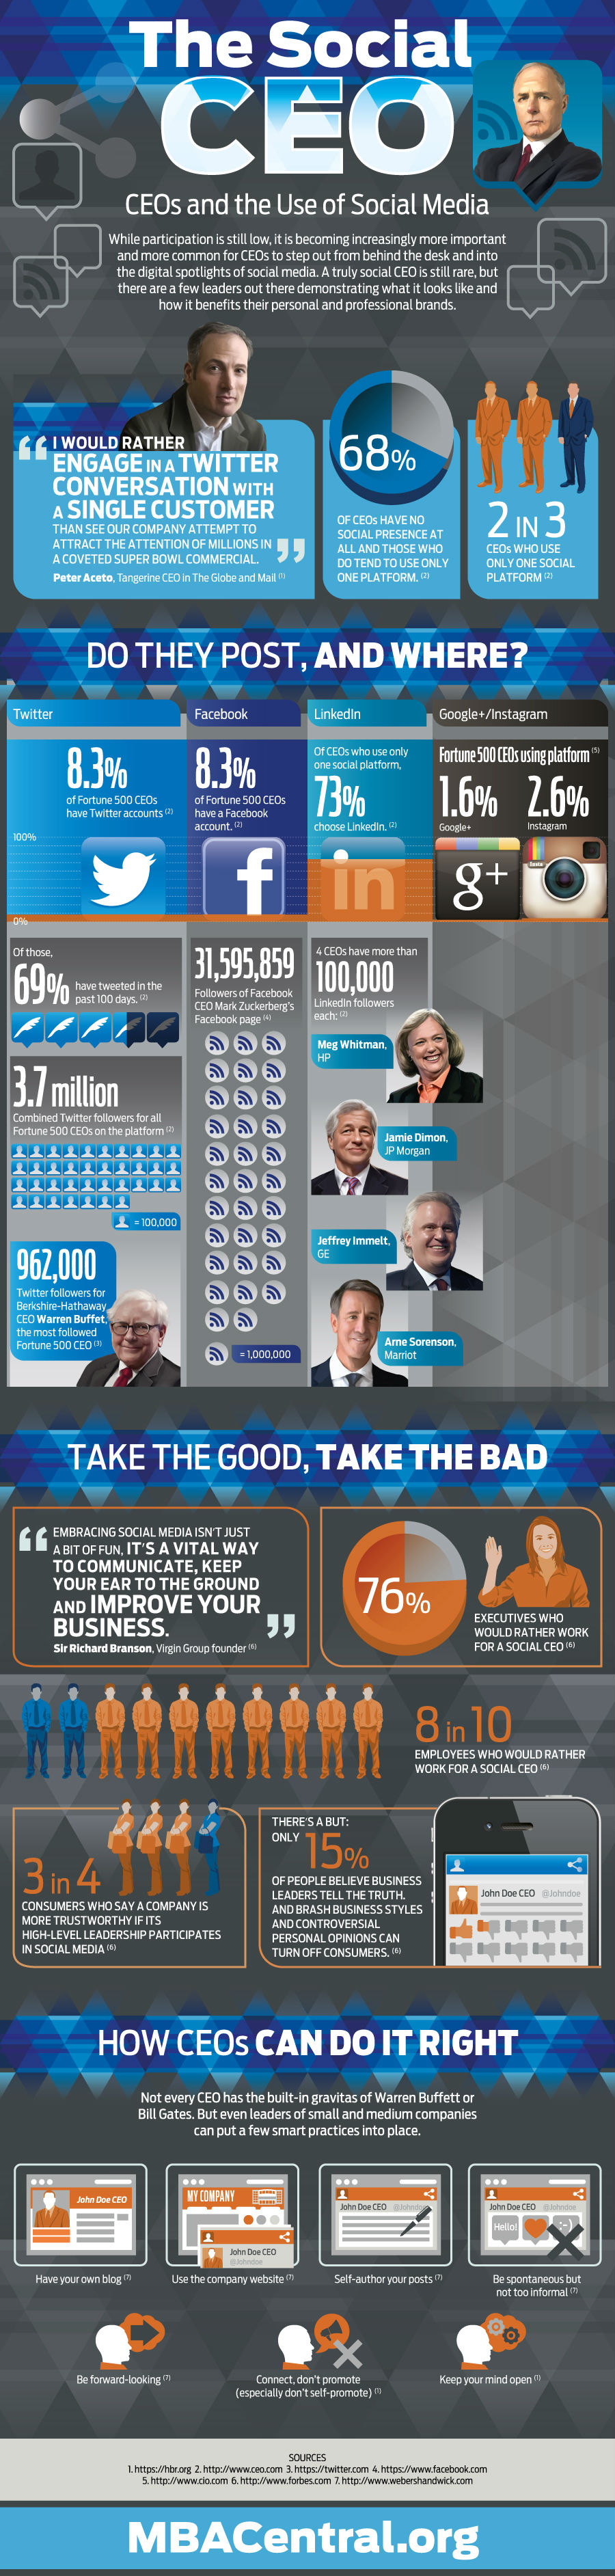 Social CEOs [Infographic]